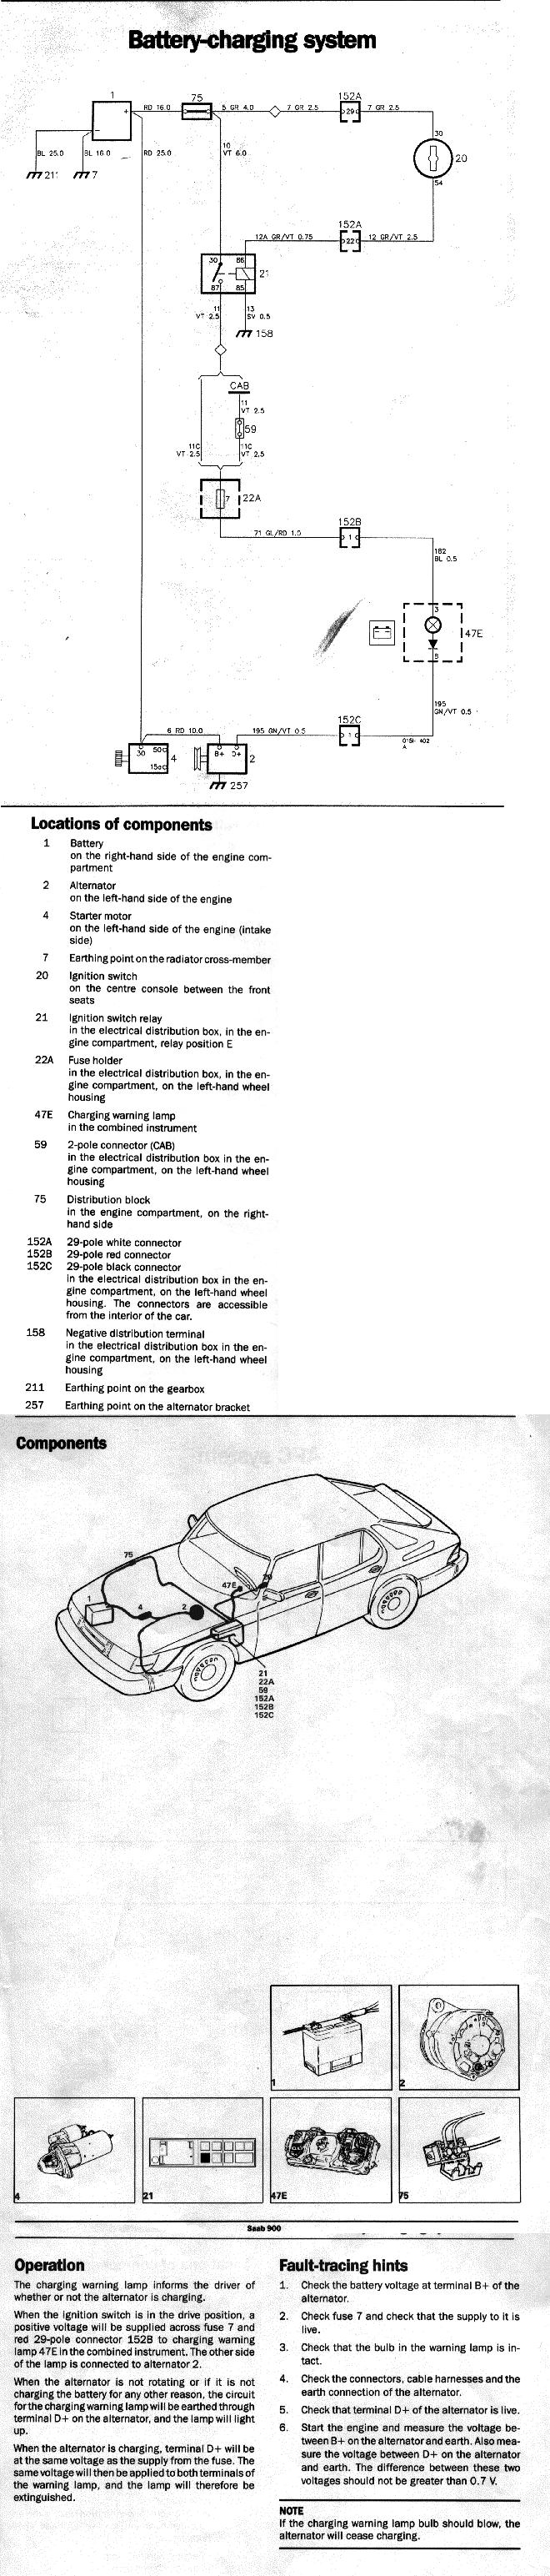 Electrical 900 89 90 Apc Tachometer Wiring Diagram 88 Ezk Ignition System With 1990 Model